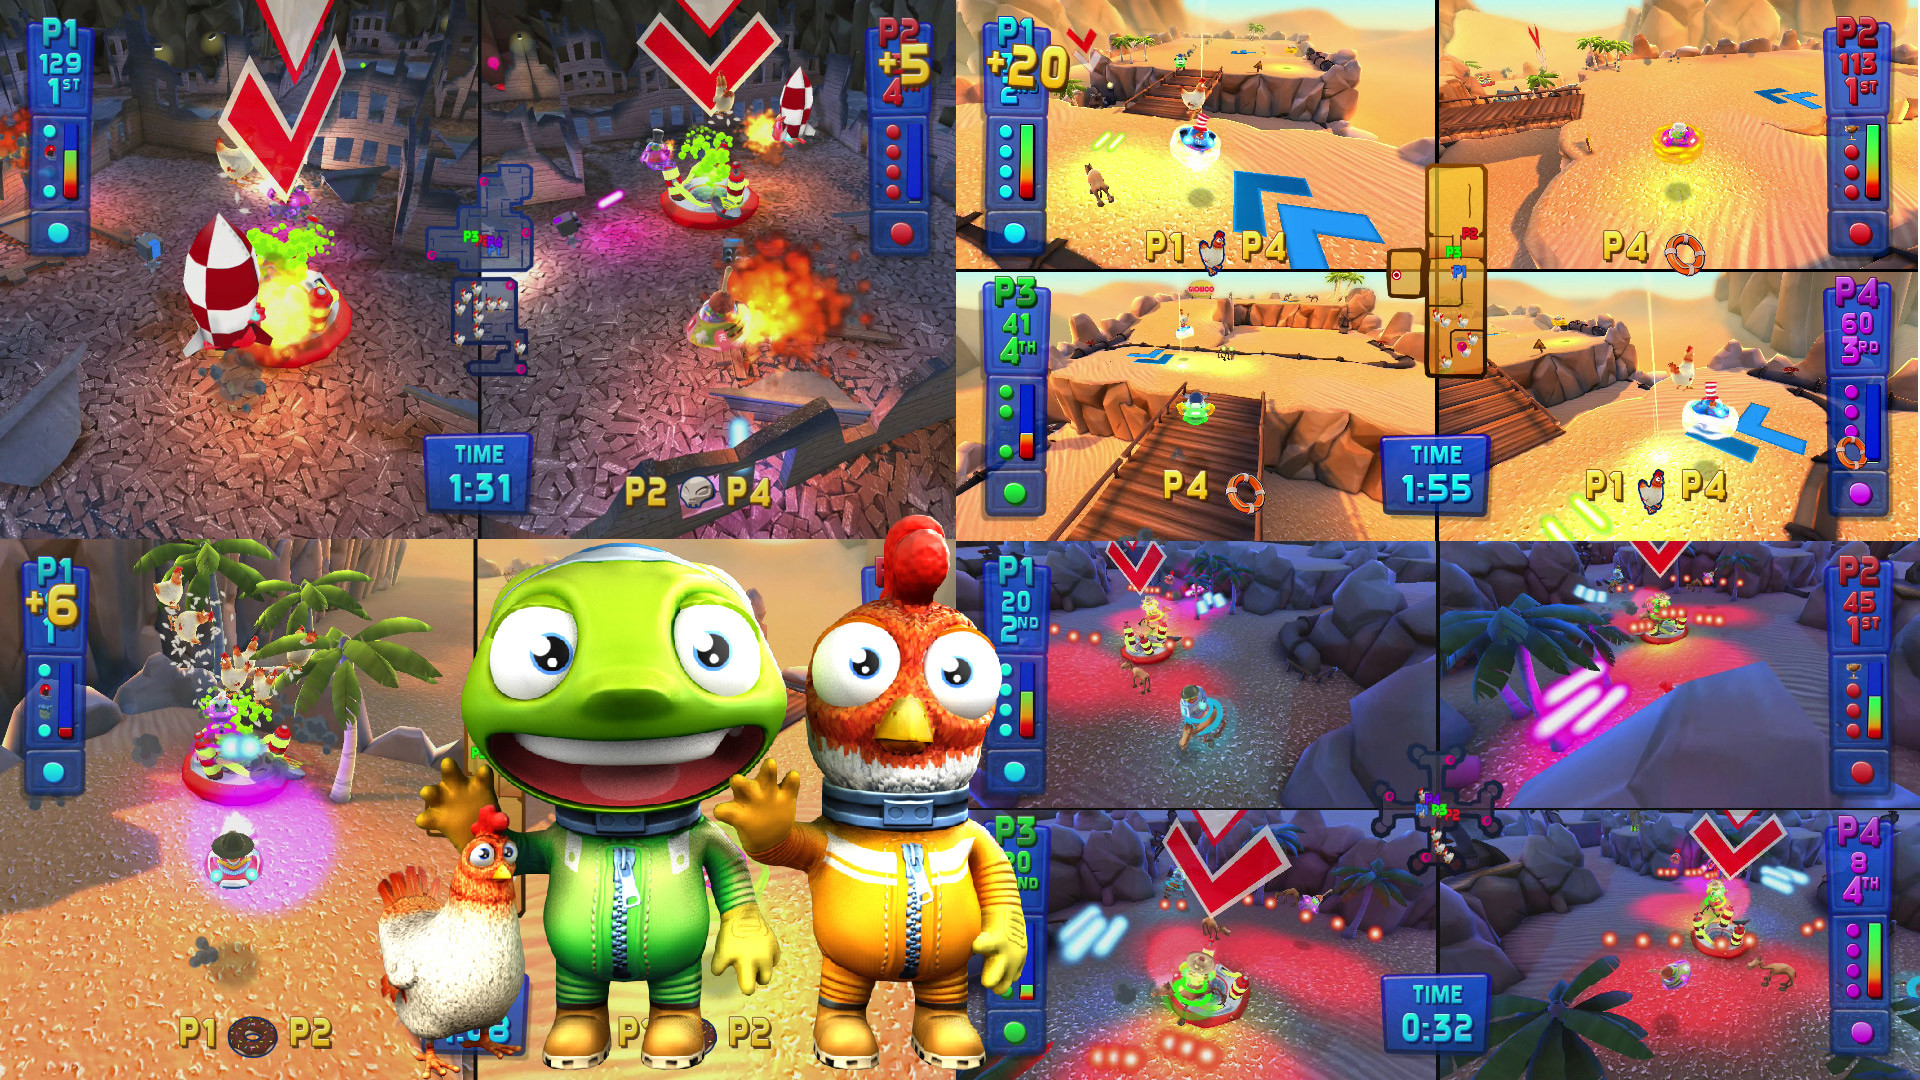 game screens and 2 of the characters